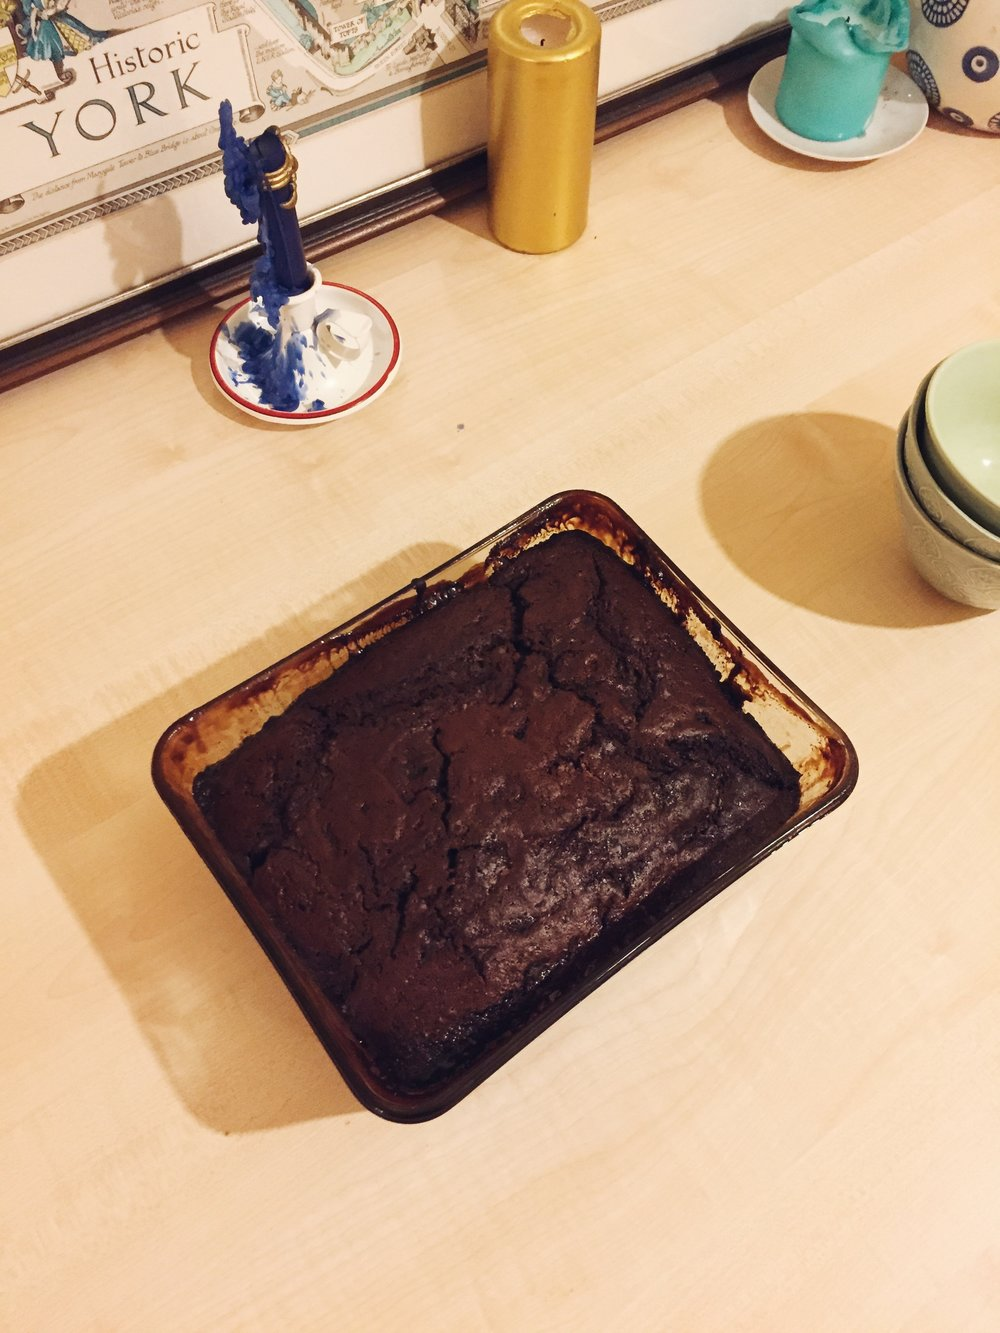 I tried my hand a self saucing chocolate pudding on Saturday evening.